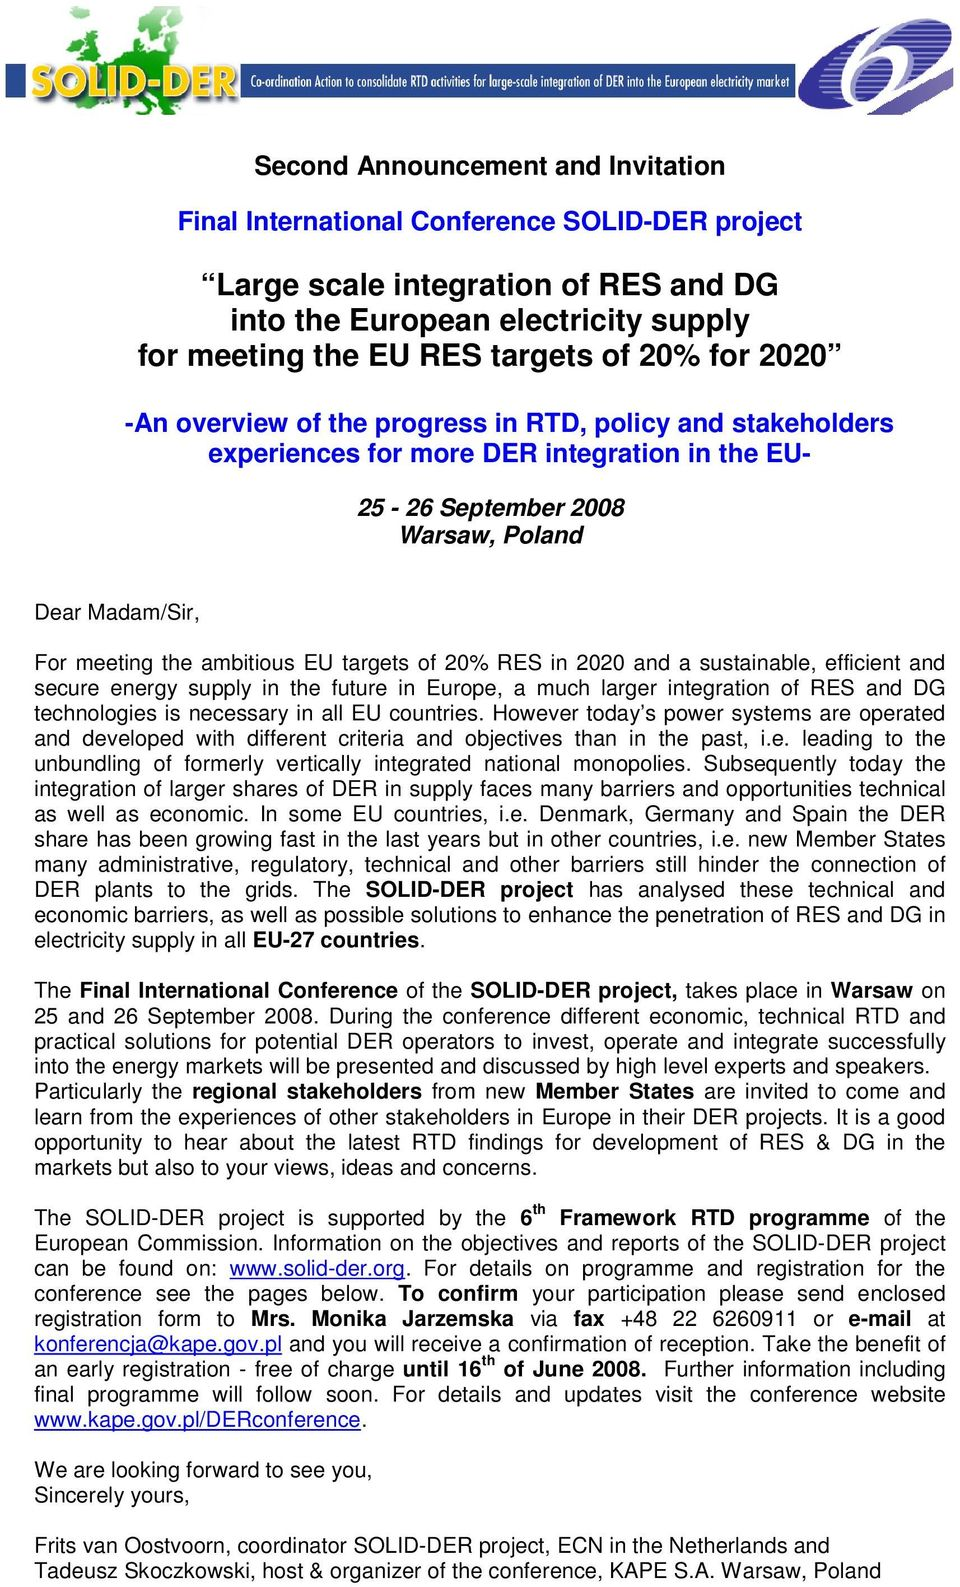 targets of 20% RES in 2020 and a sustainable, efficient and secure energy supply in the future in Europe, a much larger integration of RES and DG technologies is necessary in all EU countries.